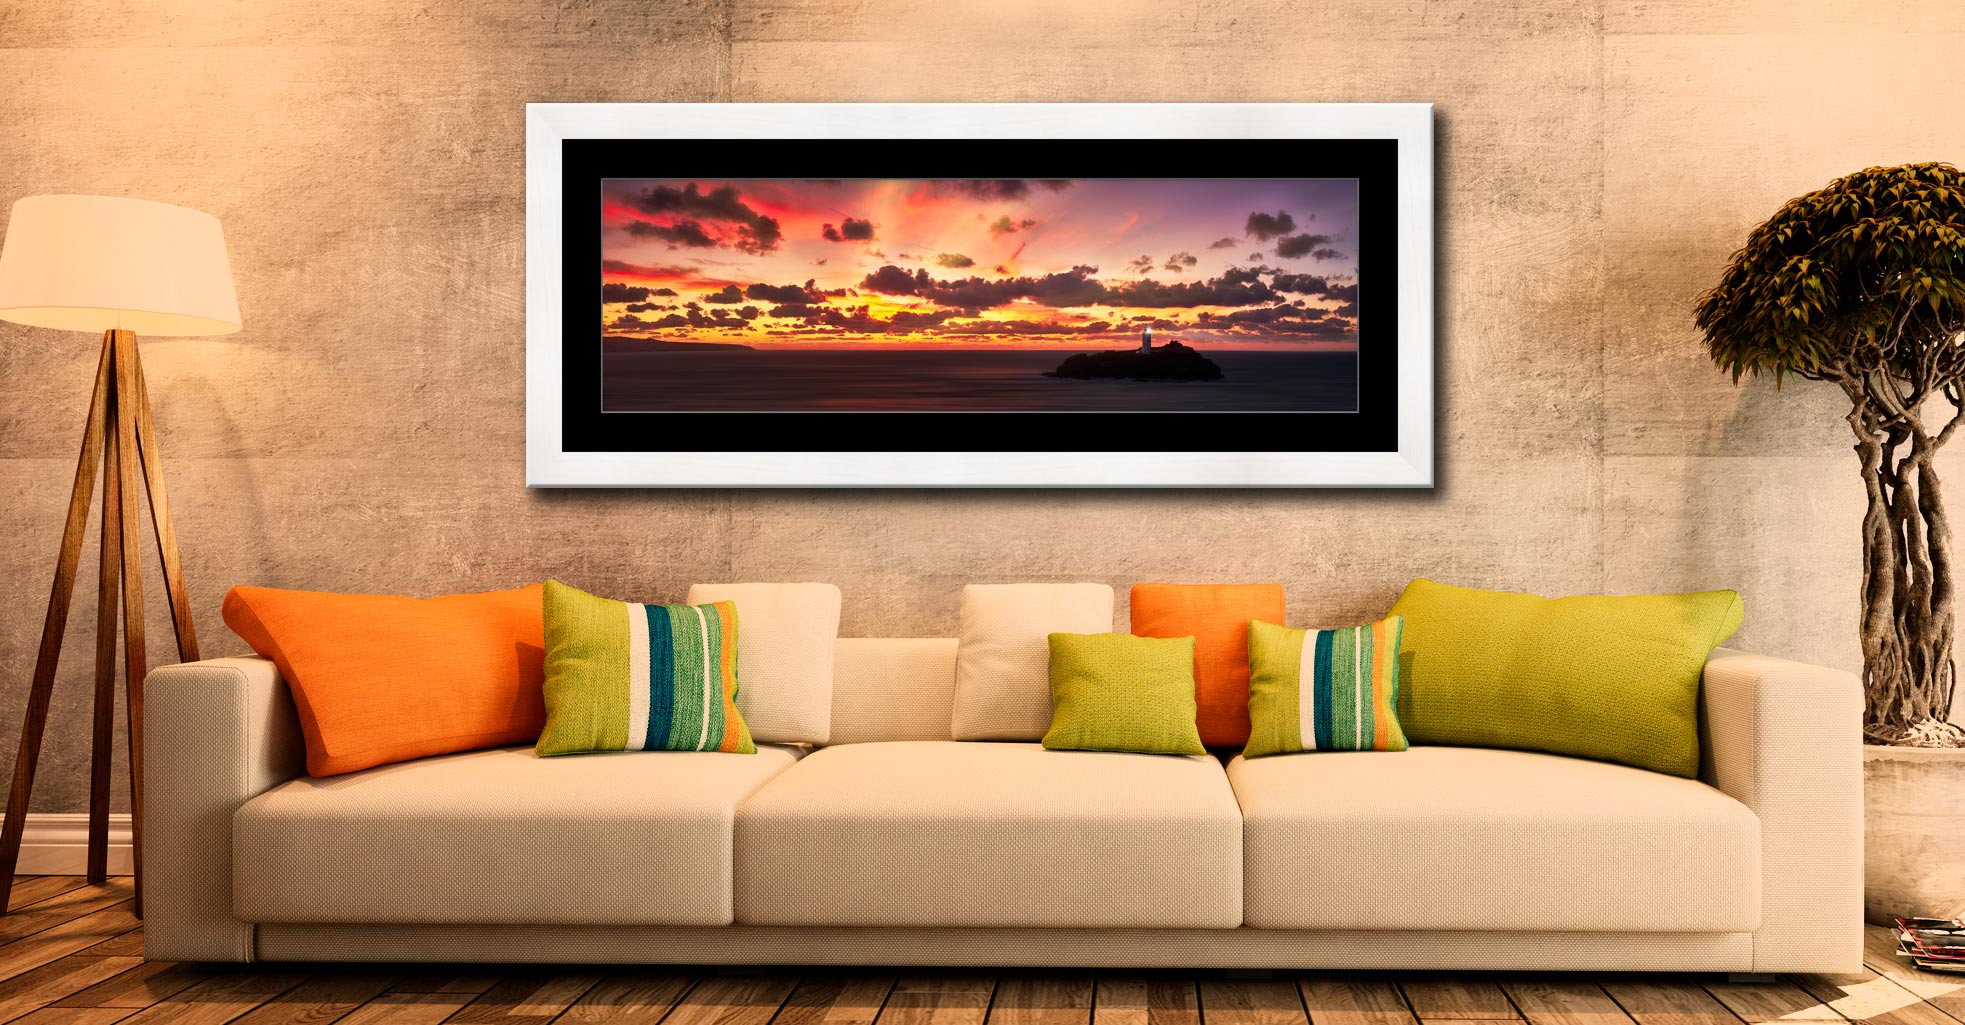 Godrevy Golden Sunset Panorama - Framed Print with Mount on Wall